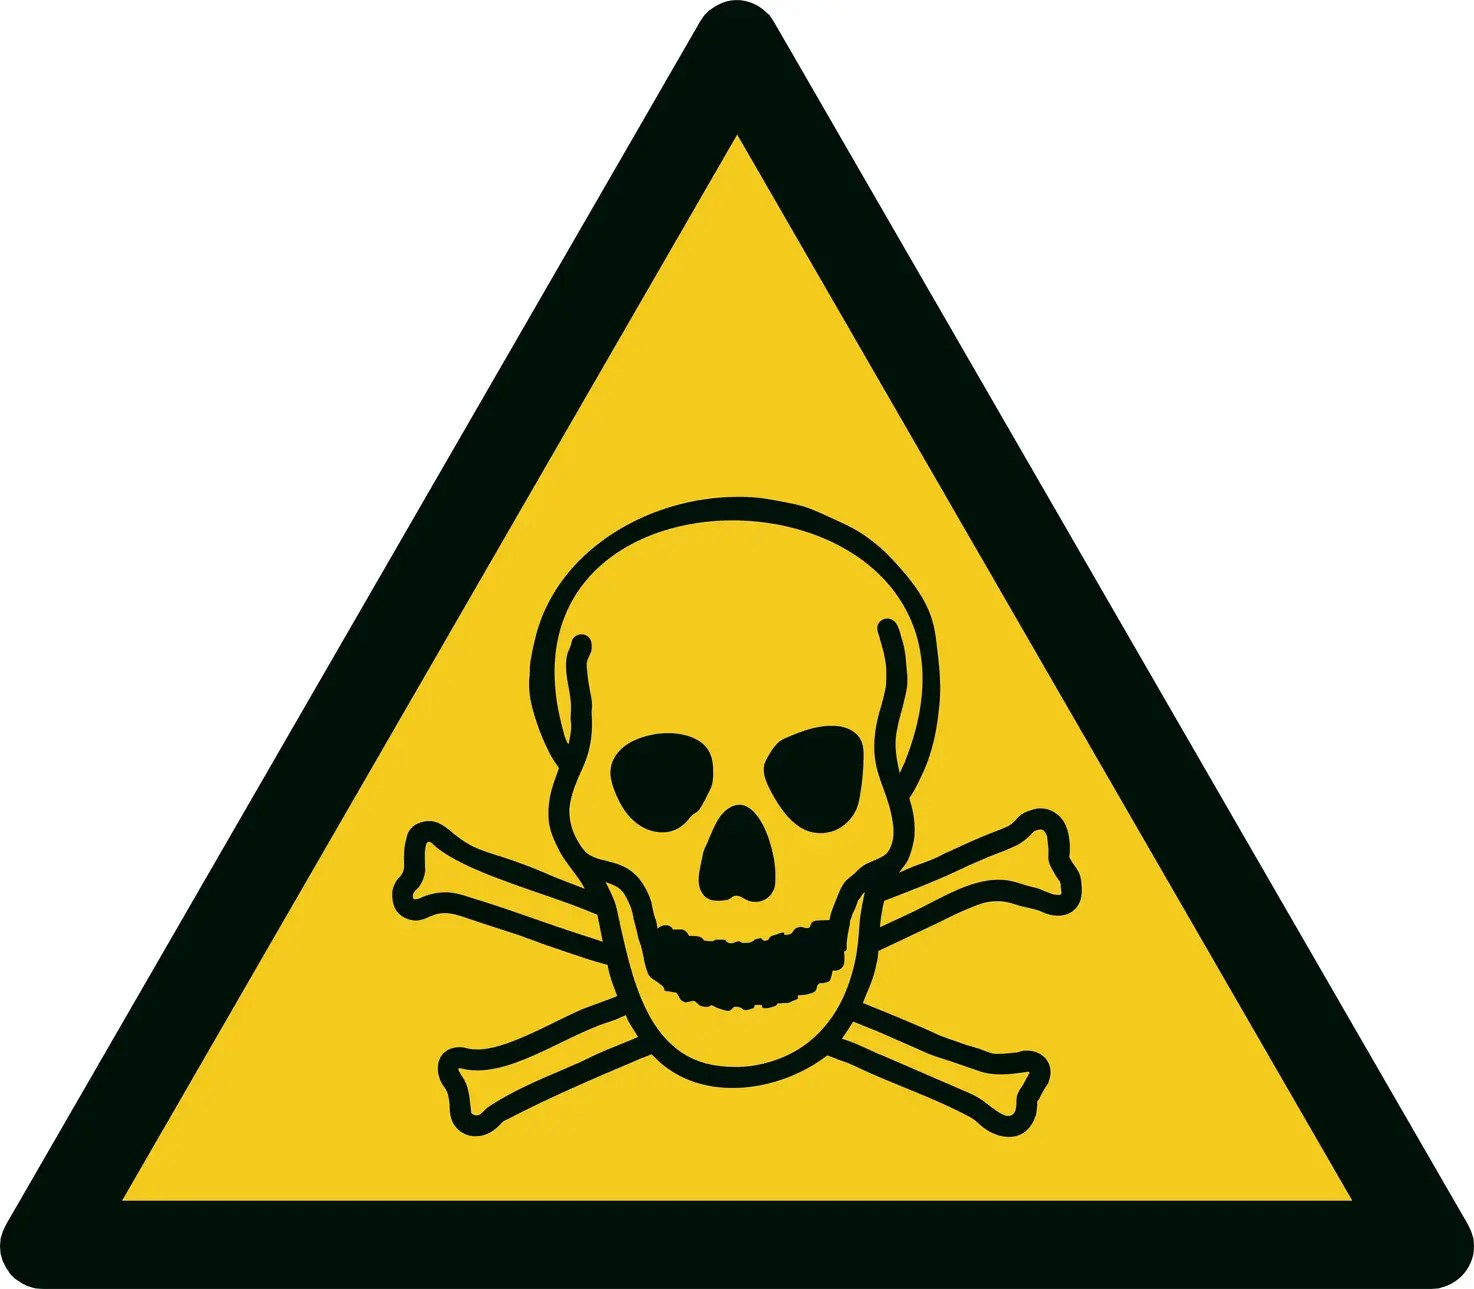 A Visual Guide To Science Safety Symbols In A Laboratory